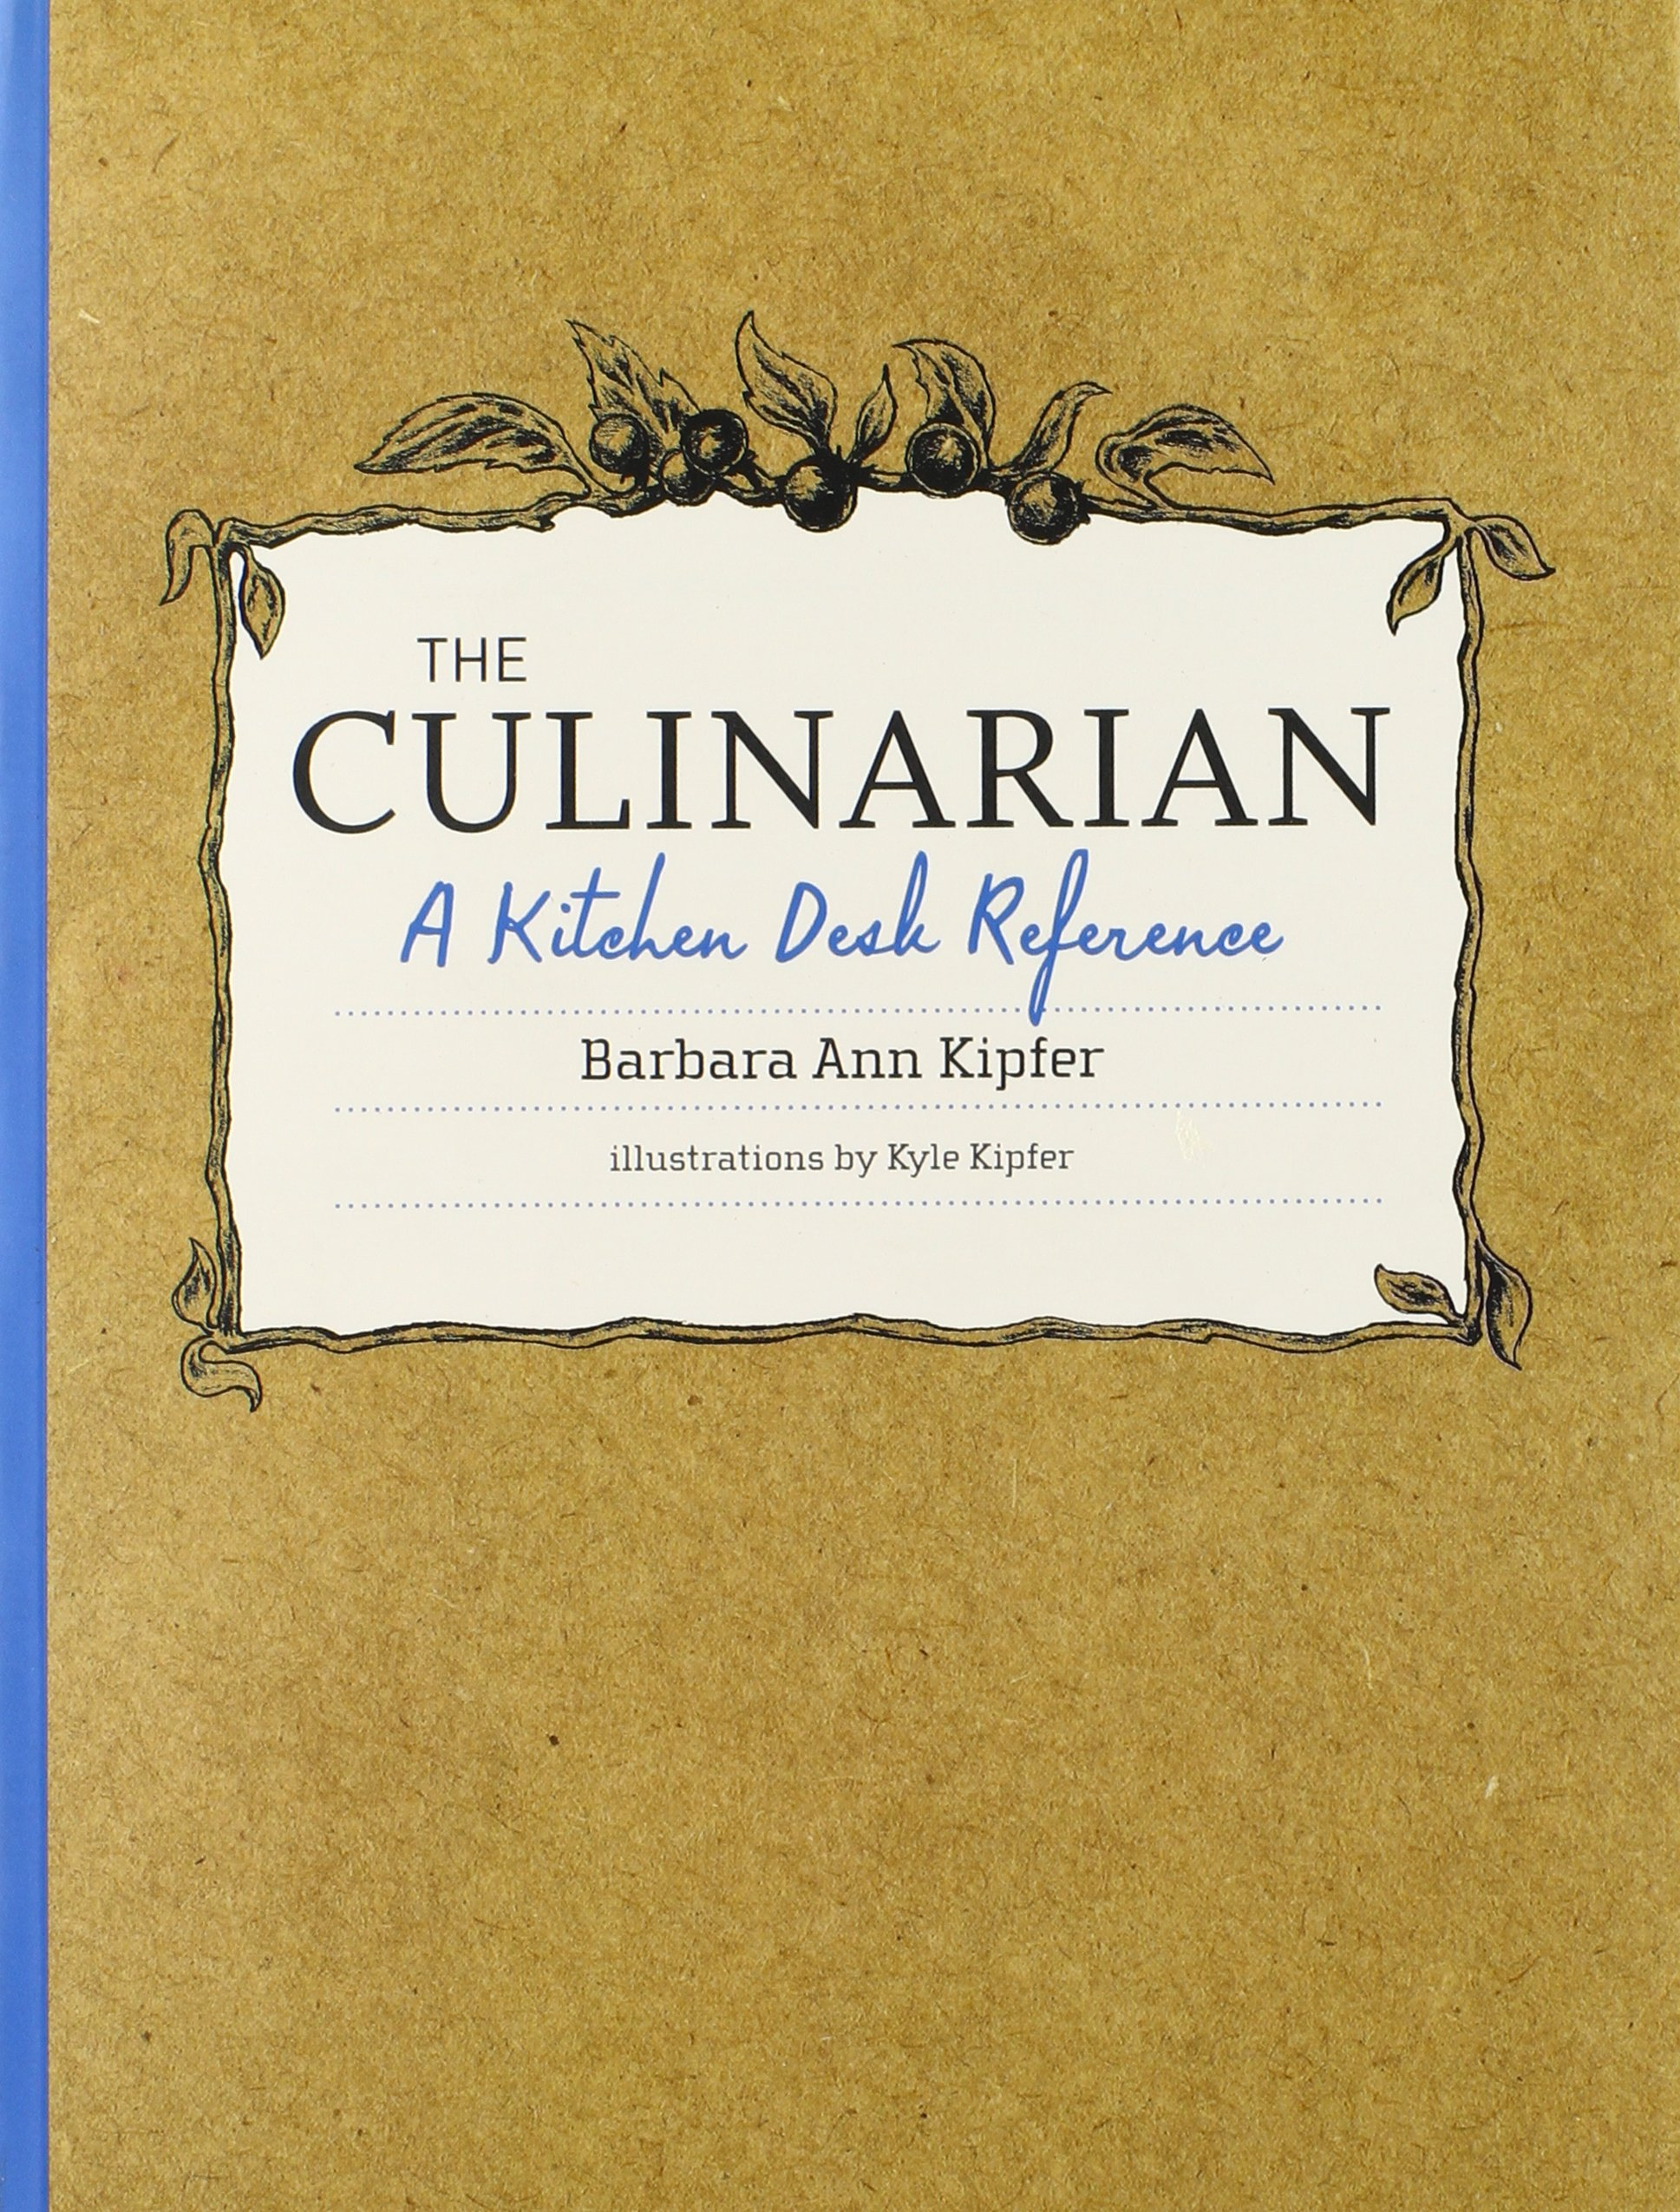 the culinarian a kitchen desk reference amazon co uk barbara the culinarian a kitchen desk reference amazon co uk barbara ann kipfer kyle kipfer 9780470554241 books